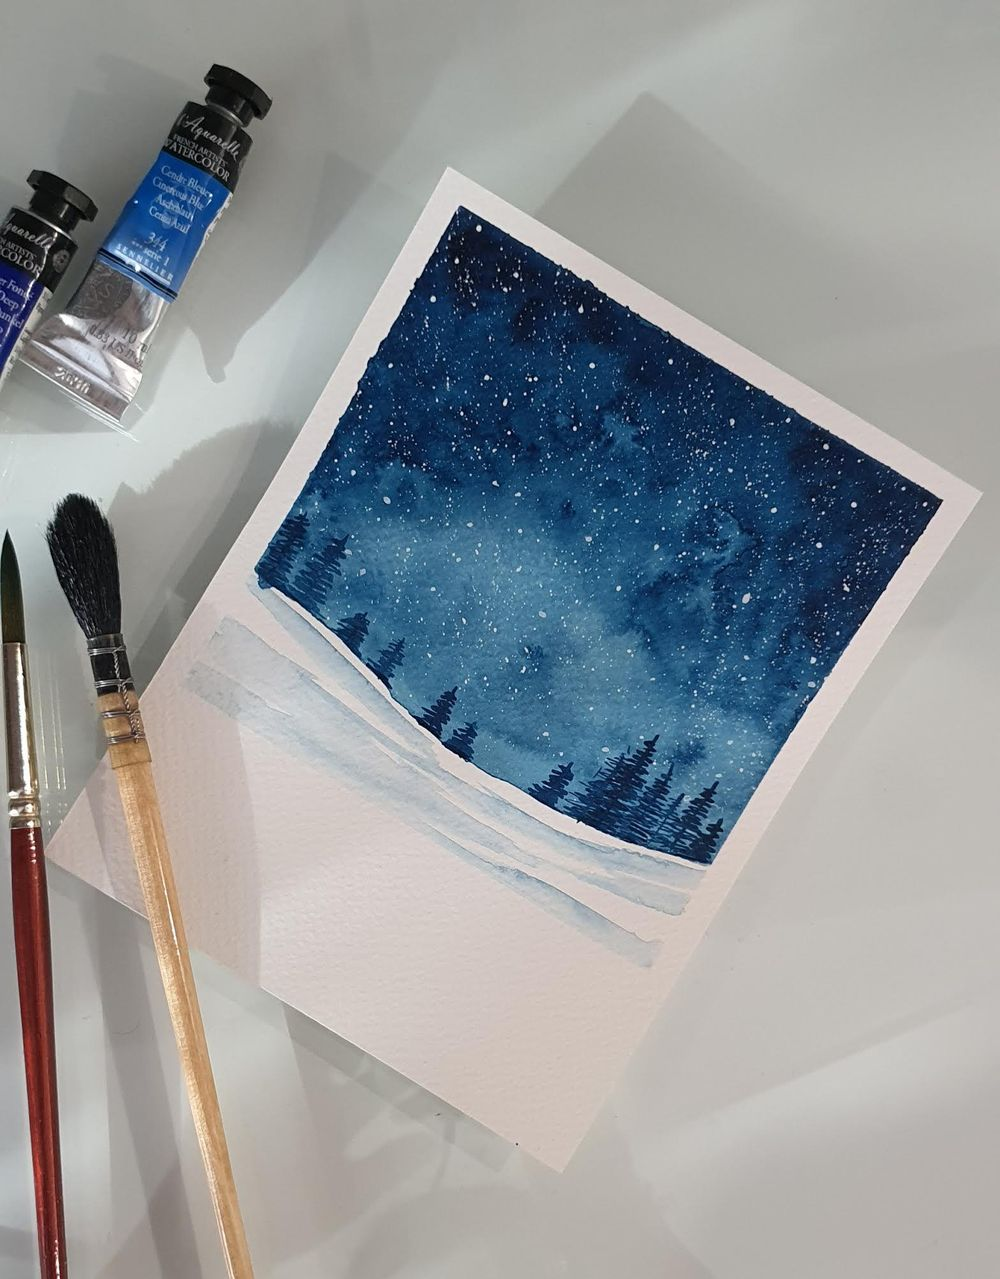 Snowy Galaxy Landscape - image 2 - student project